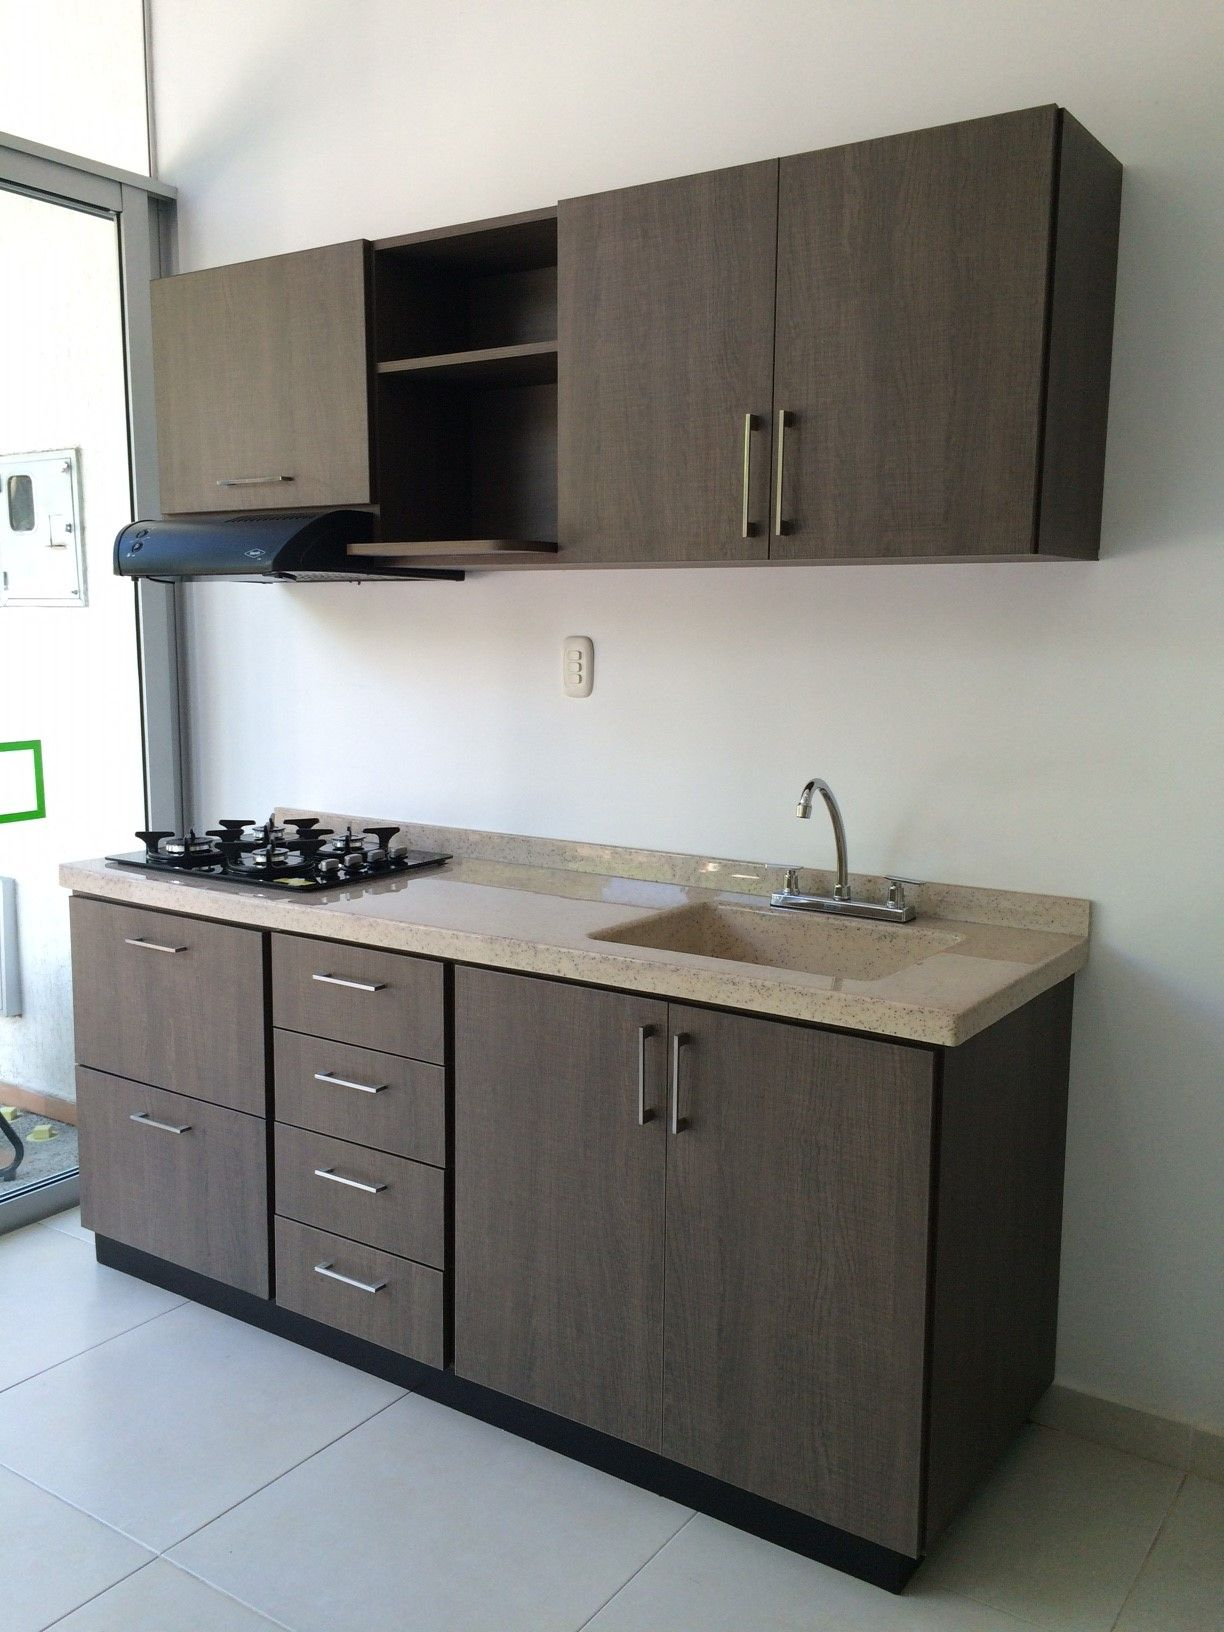 Showroom cozzina colombia melamina vesto decoraci n for Muebles para cocinas pequenas modernas